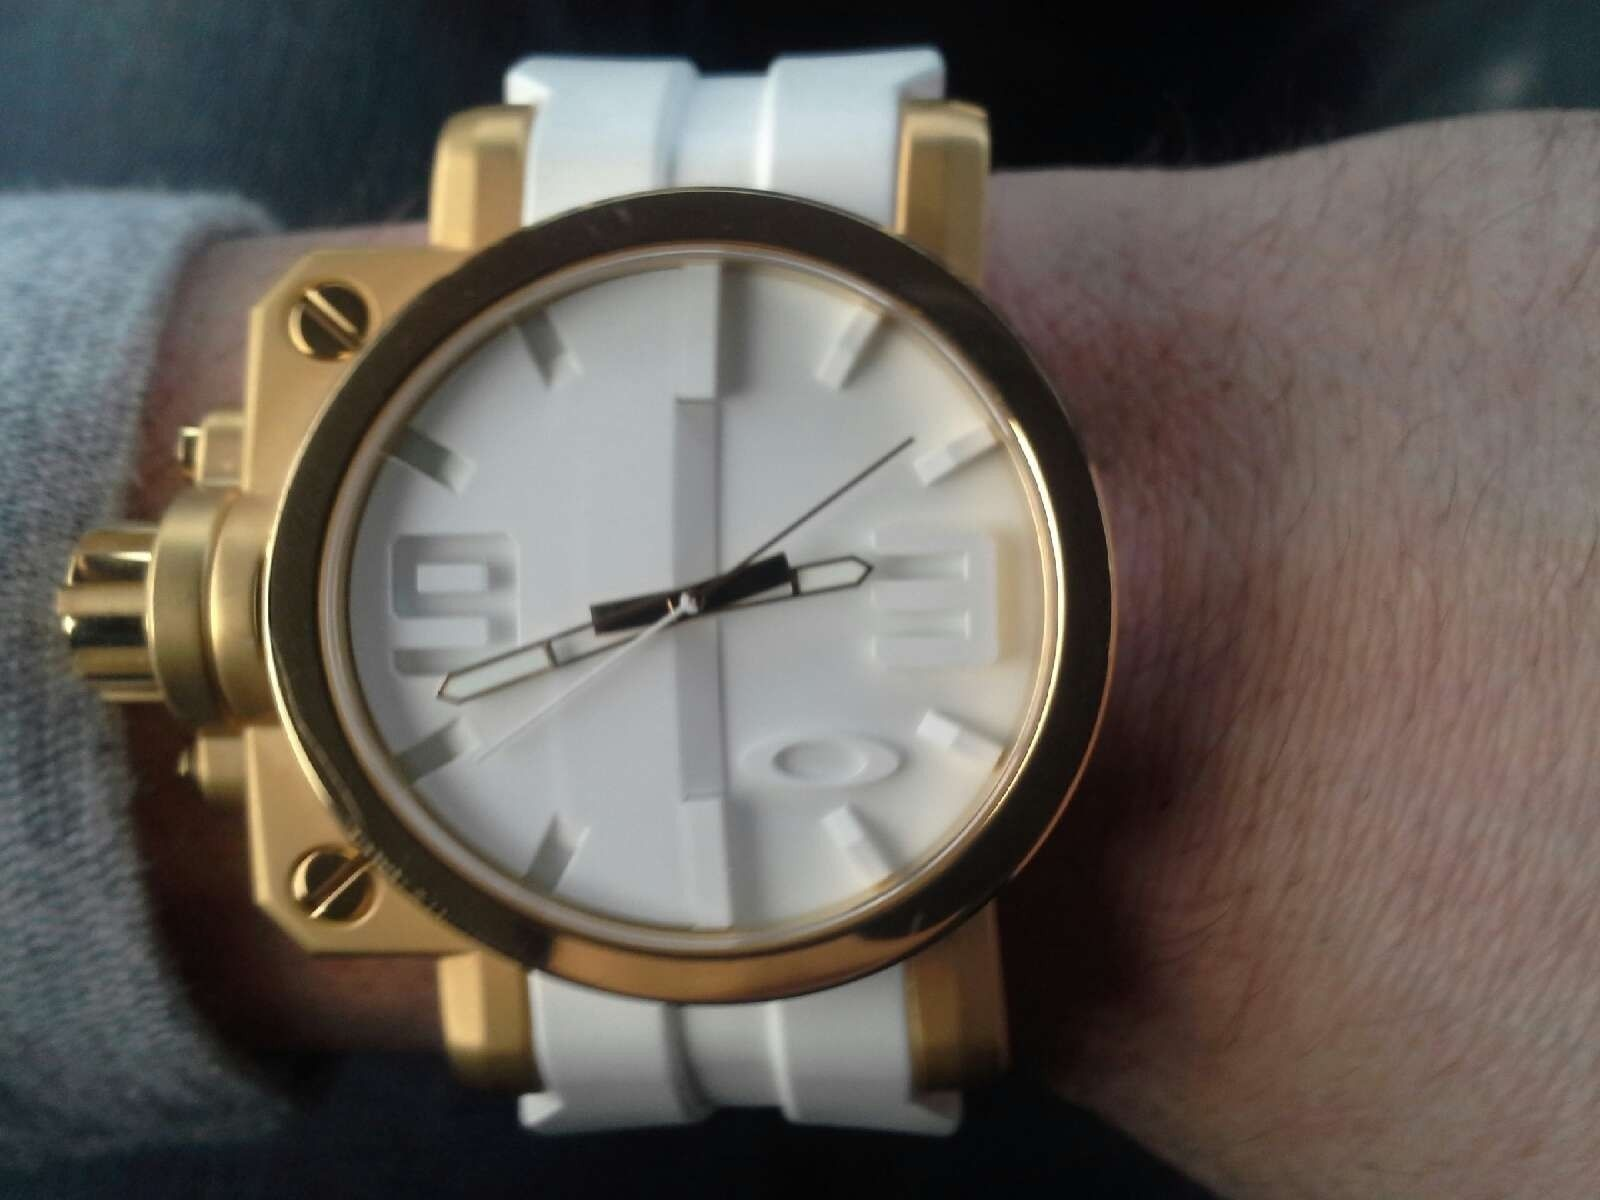 Gearbox white and gold - 20150102_144145.jpeg